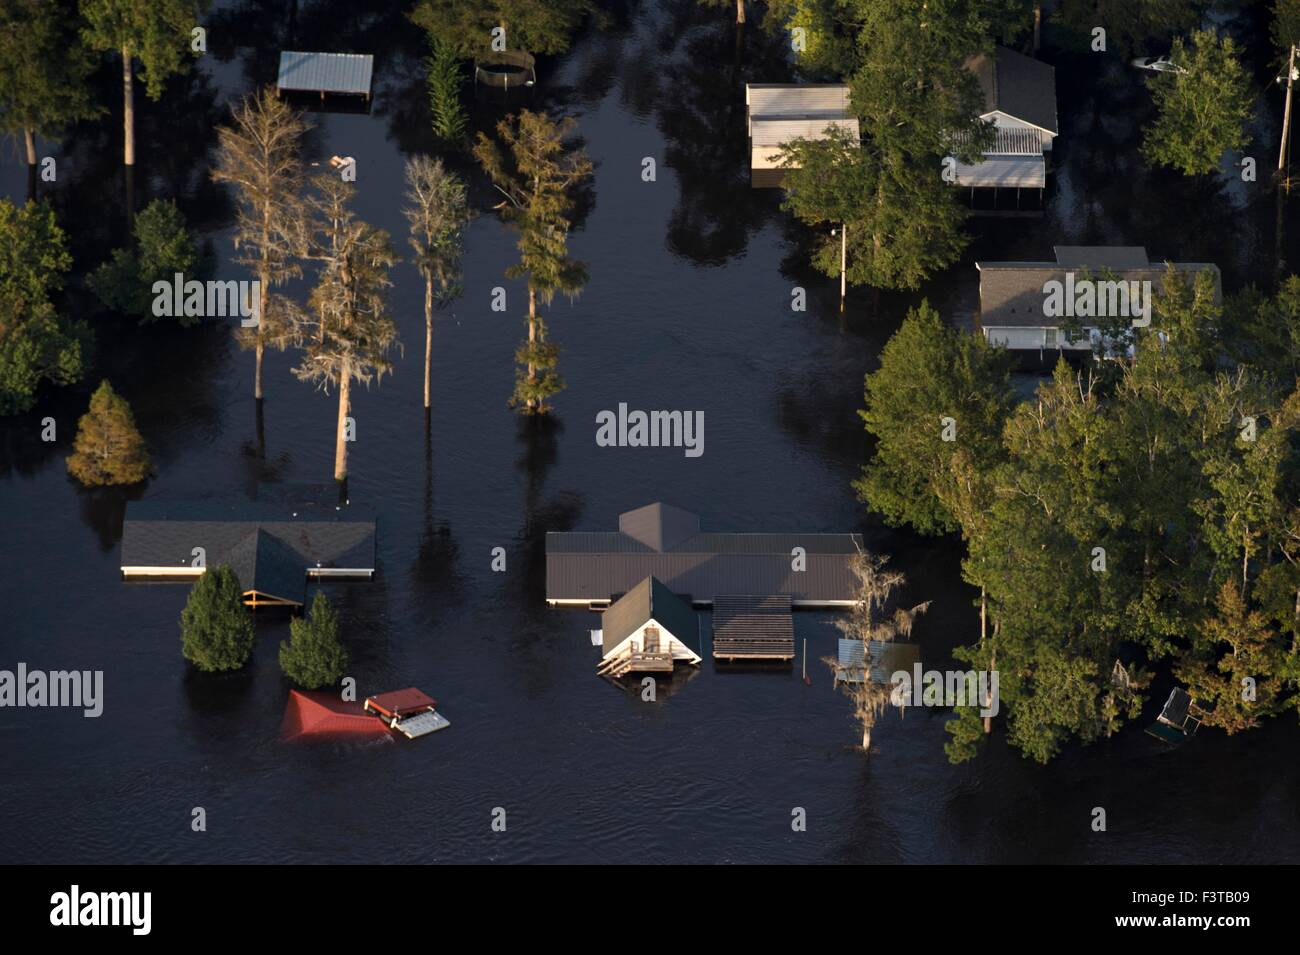 Aerial view of homes submerged in floodwaters after record breaking storms dumped more than two feet of rain October 9, 2015 in Georgetown, South Carolina. At least 17 people have died from the floods that effected most of South Carolina. Stock Photo